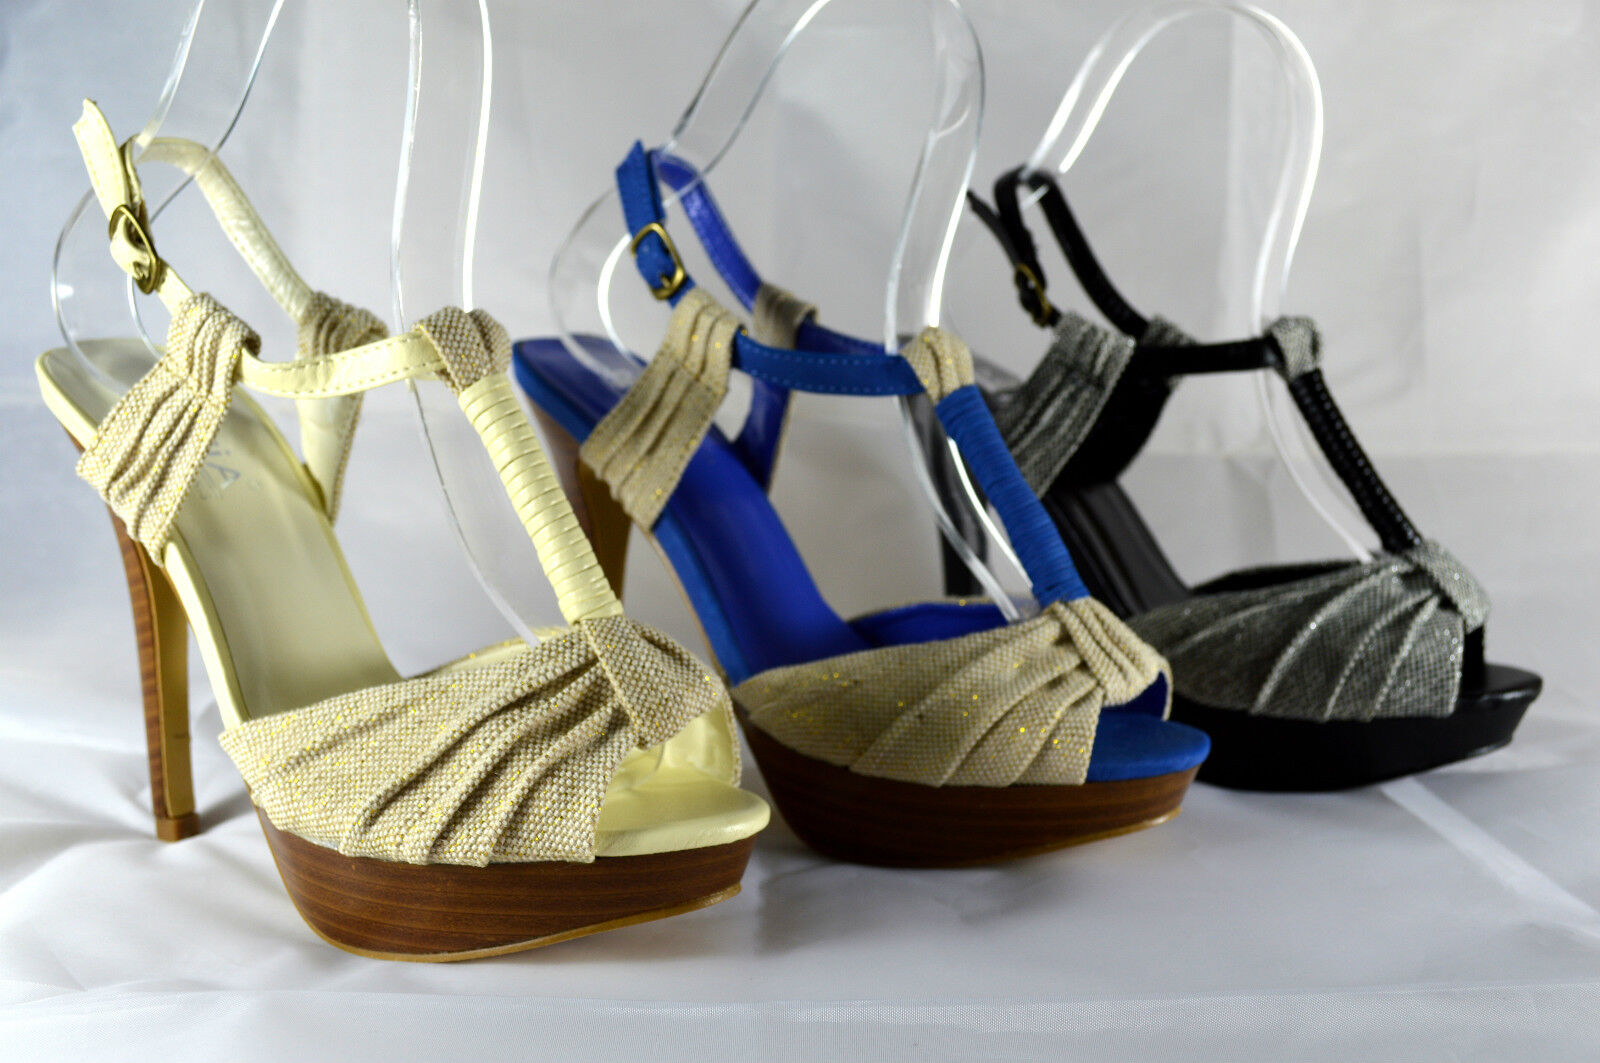 ELEGANT WOMEN'S STRAPPY Size SANDALS HIGH HEEL COURT SHOES Ankle-Strap Size STRAPPY 36-41 A. bb967f